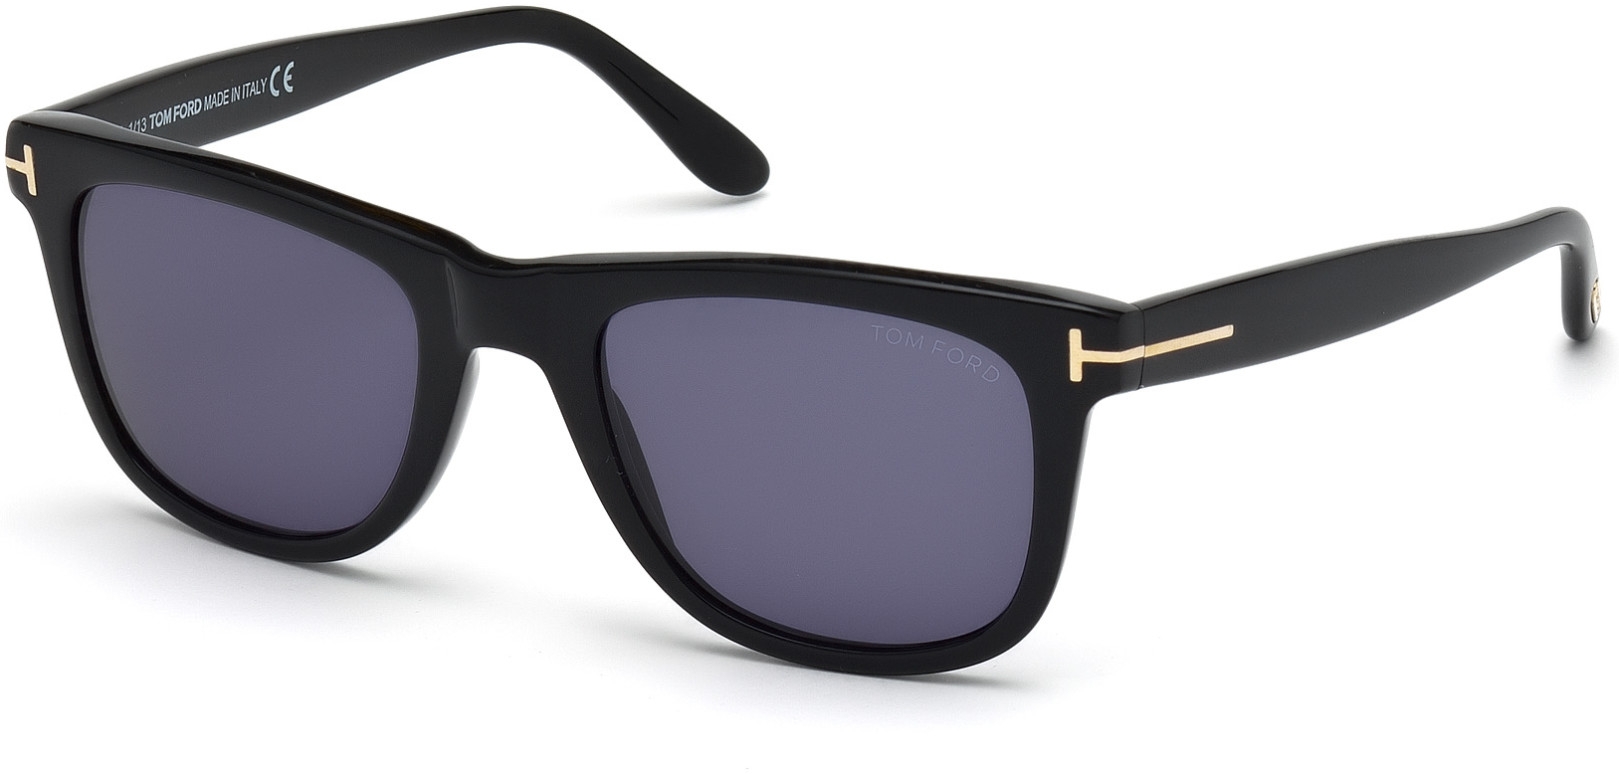 TOM FORD LEO FT0336 style-color 01V   - shiny black  / blue